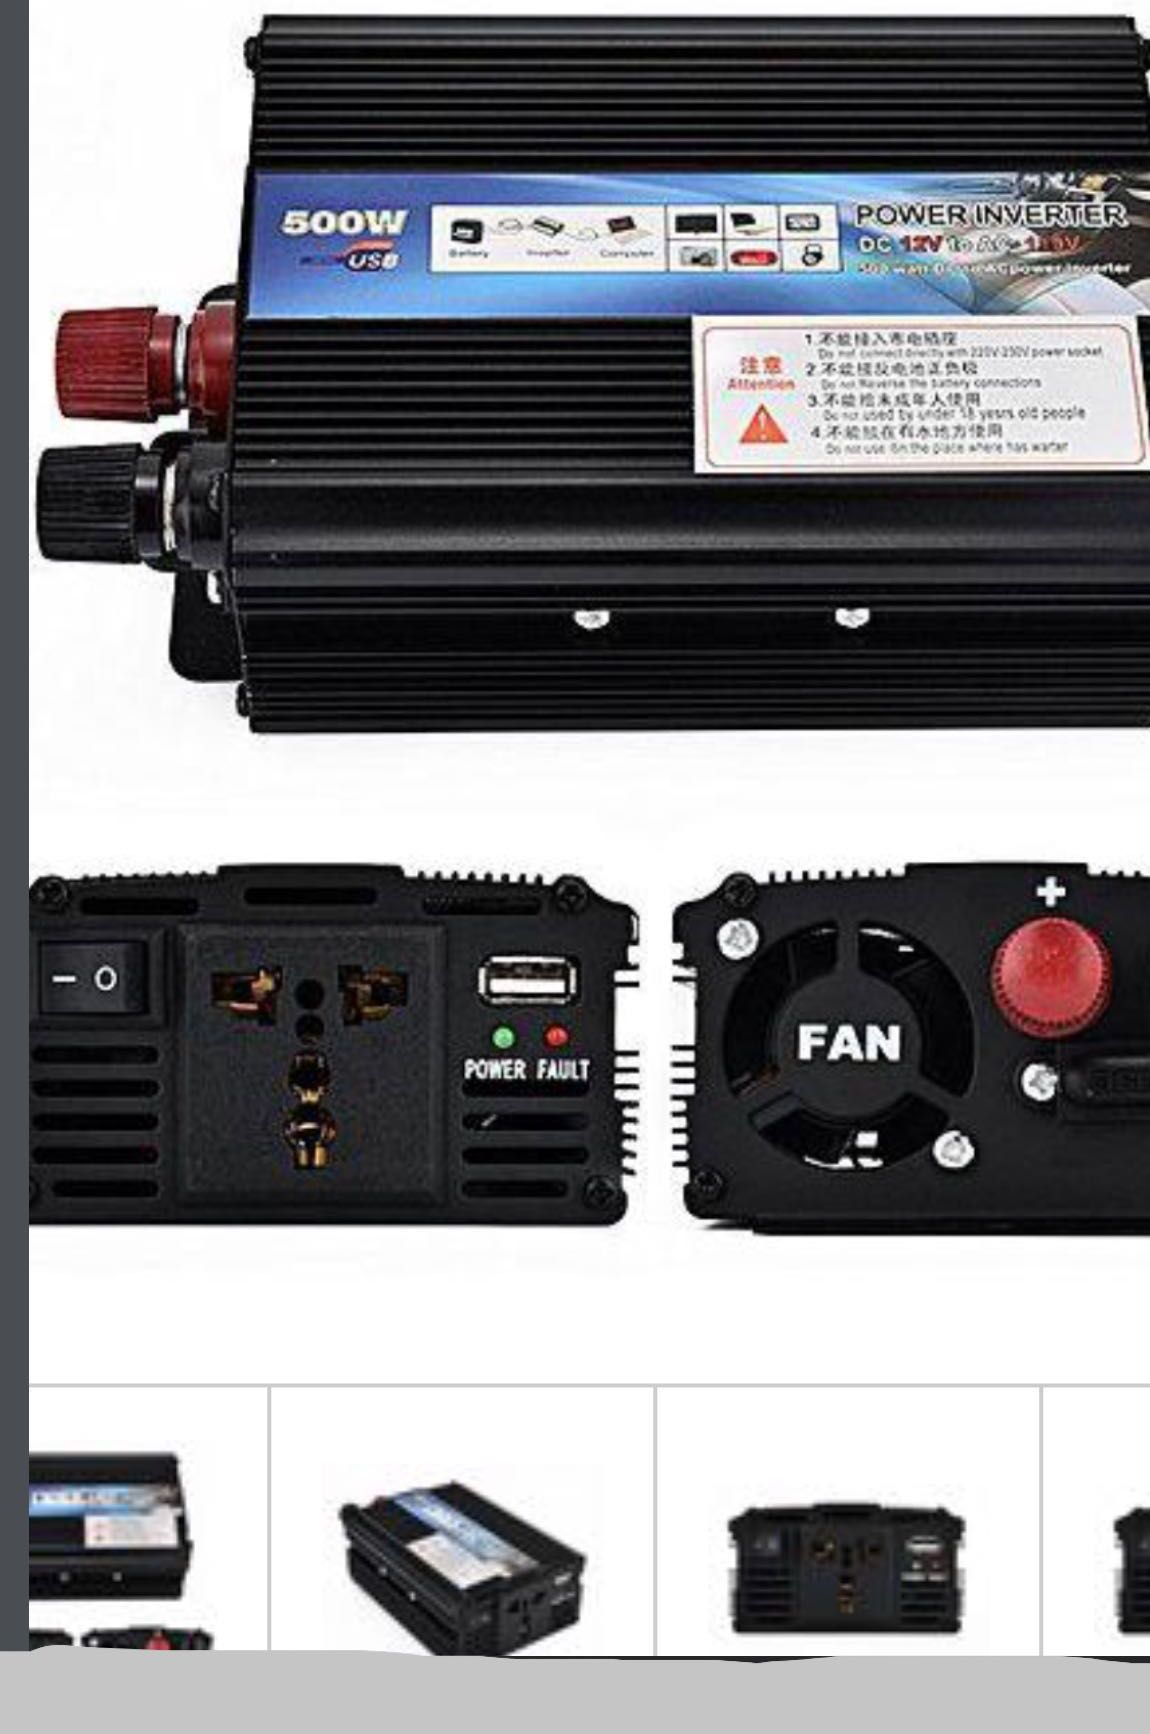 500w Peak Modified Sine Wave Power Inverter Dc 12v To Ac 220v Car How Make A Simple 200 Watt Circuit Converter 2018 New Electronics Others On Carousell